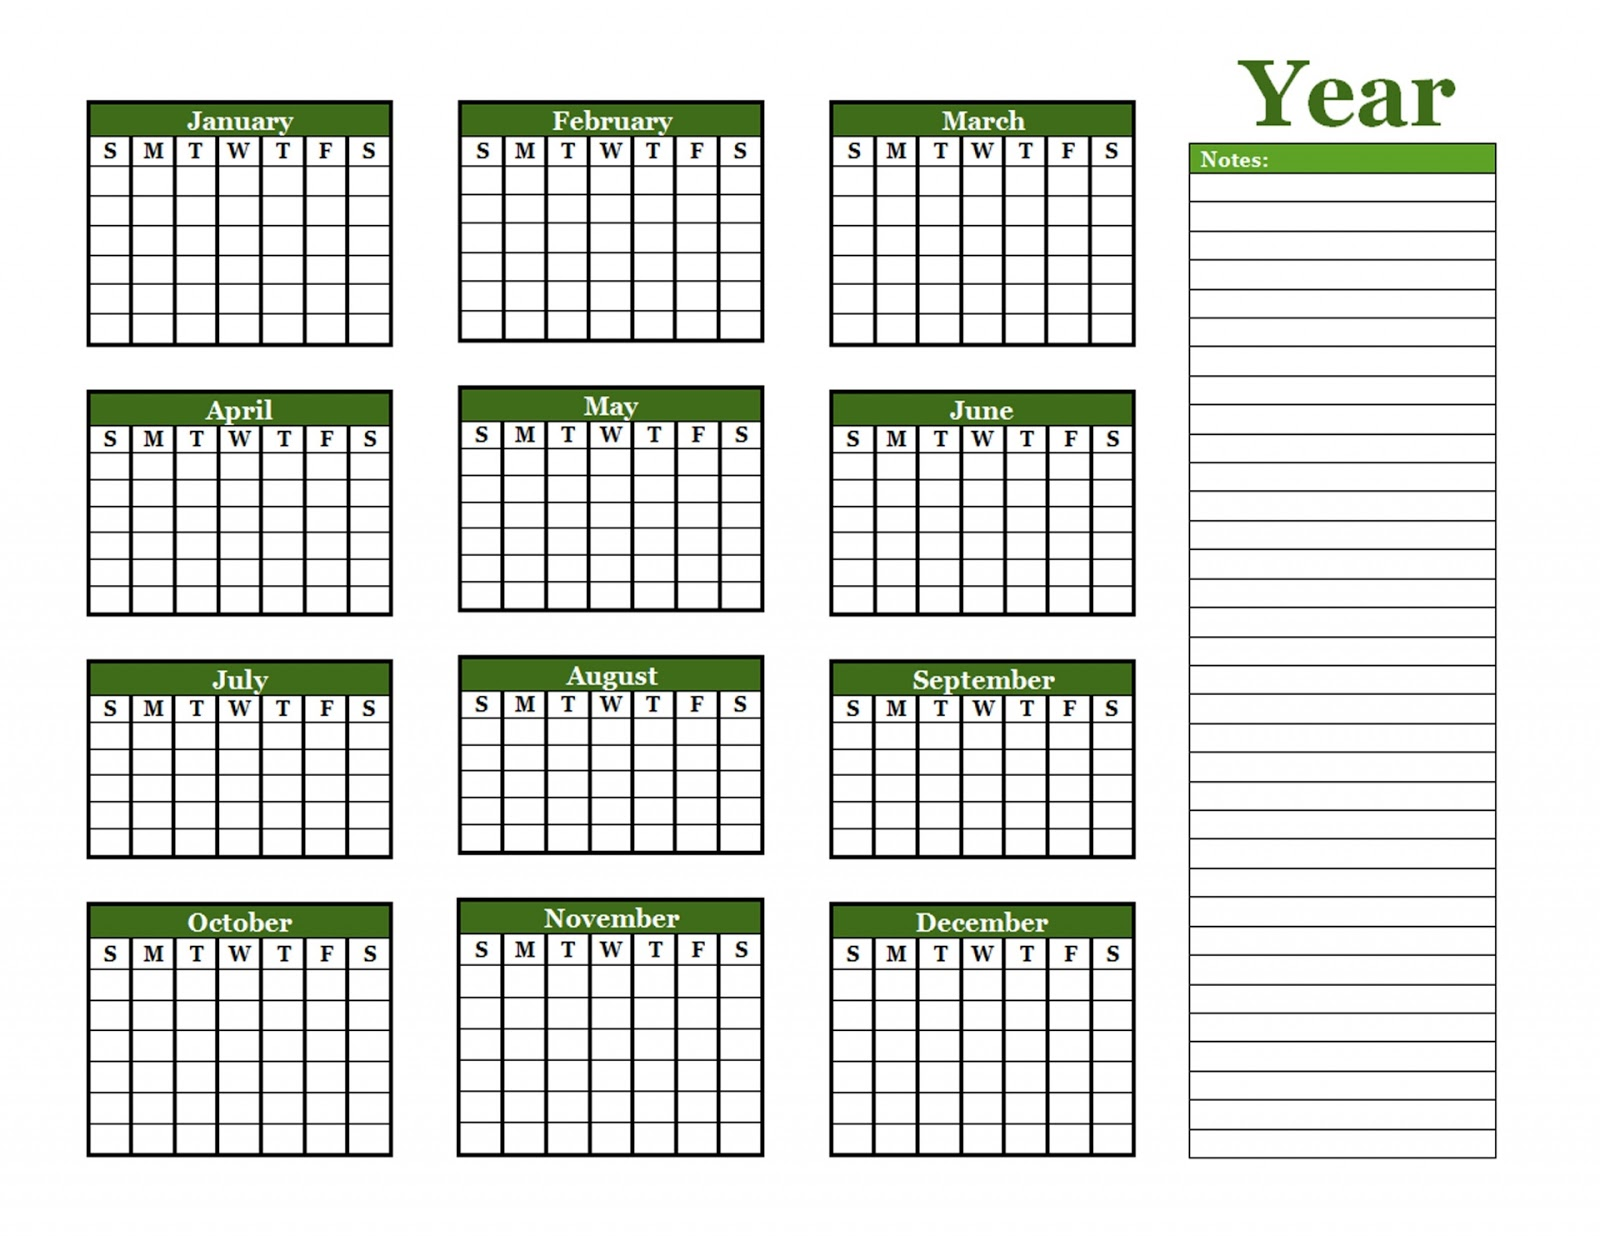 Empty Year Calendar : Blank yearly calendar calendars kalendar